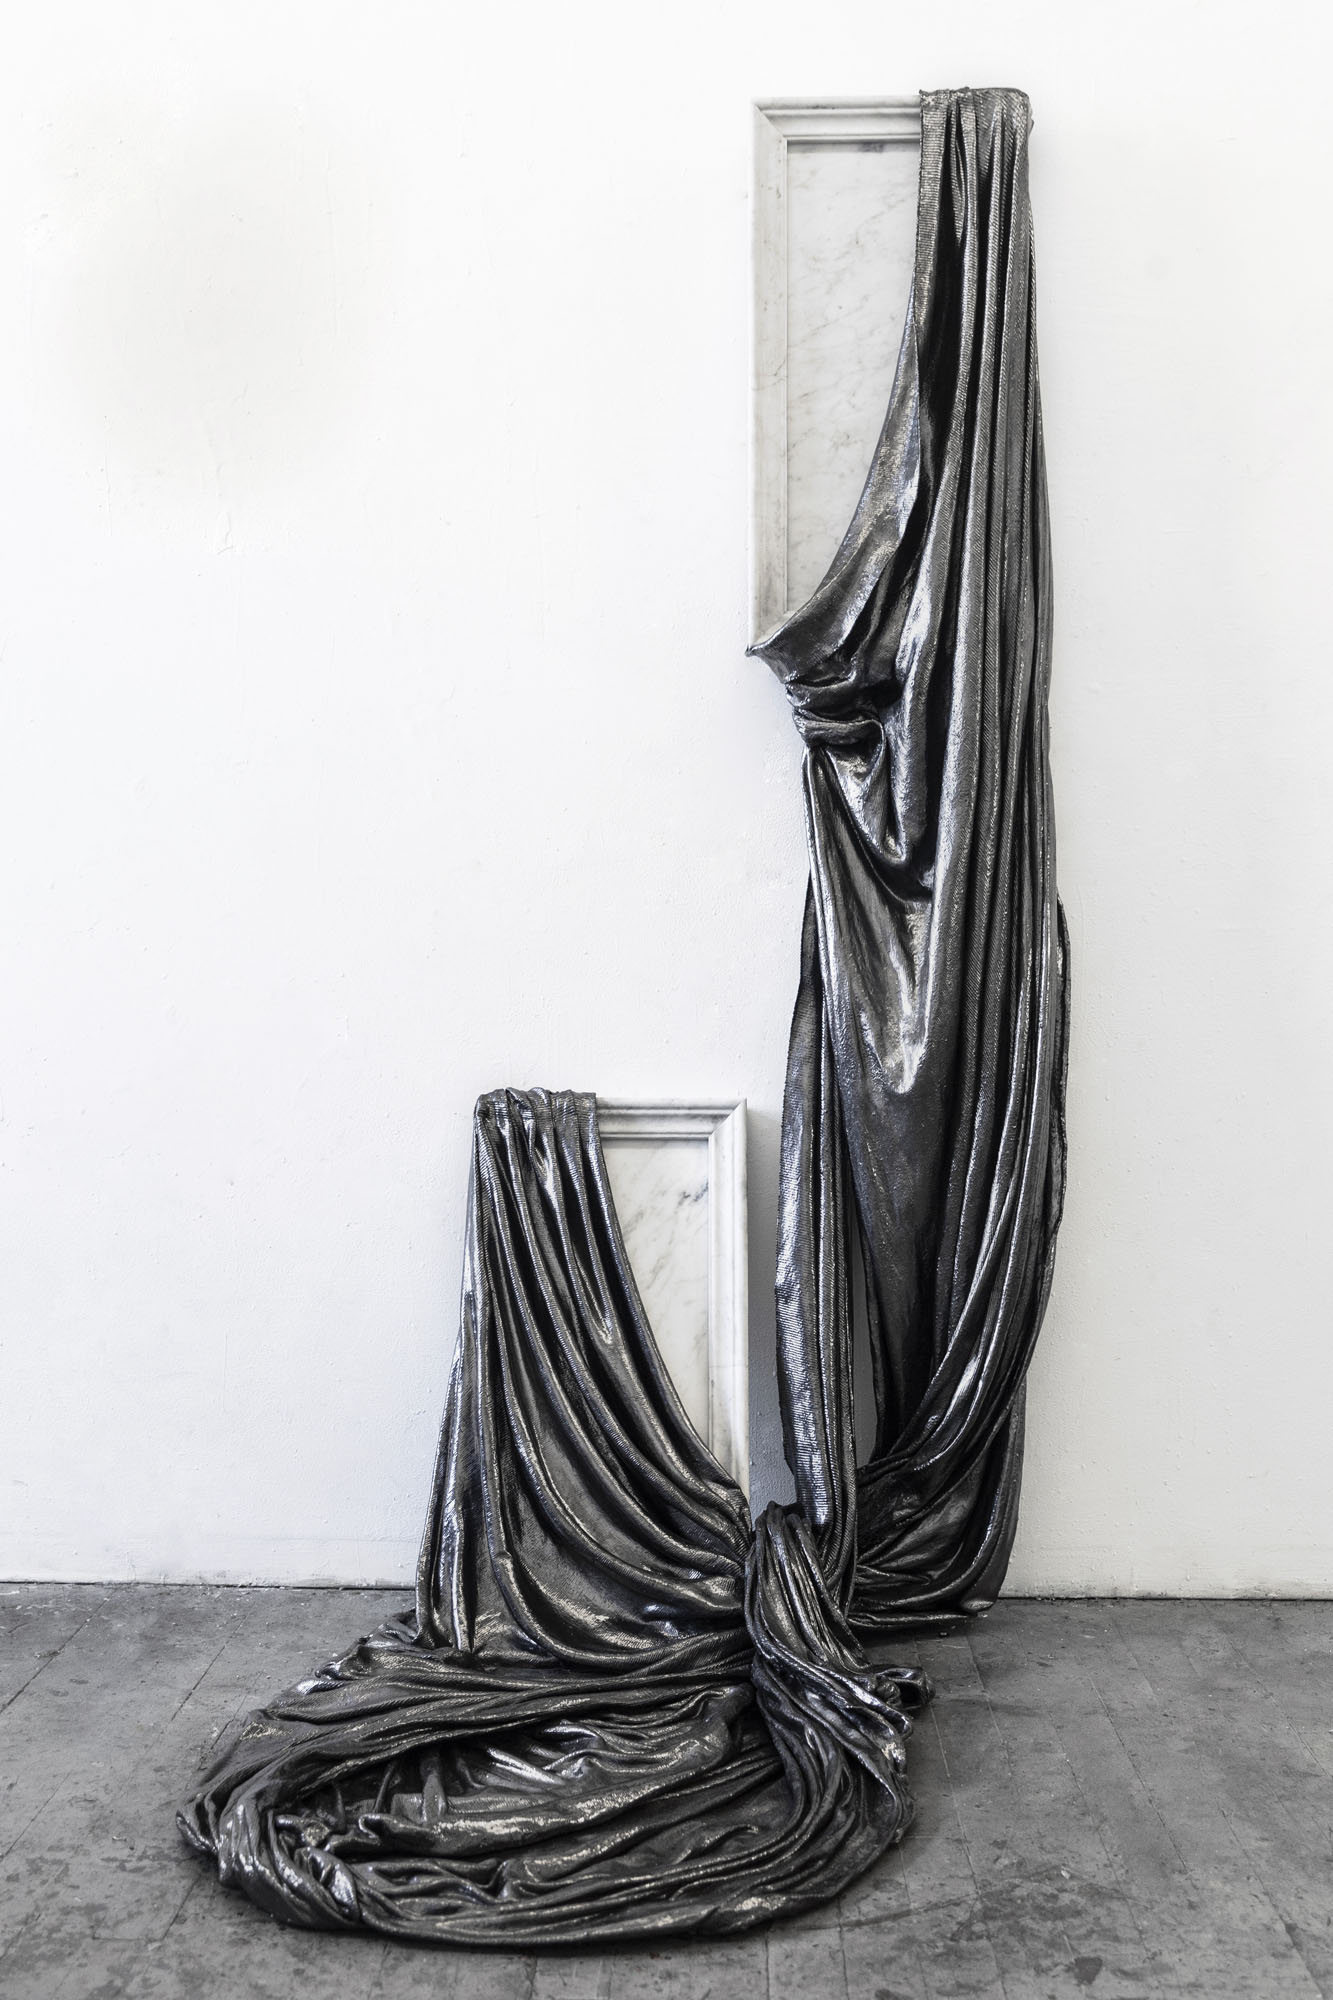 Lauren Seiden  Shields of Armor, I Turn and Burn , 2019 Marble, graphite pencil, fabric and mixed mediums Dimensions variable: 68 x 38 x 14.5 x 33 inches (172.72 x 96.52 x 39.37 x 83.82 cm)